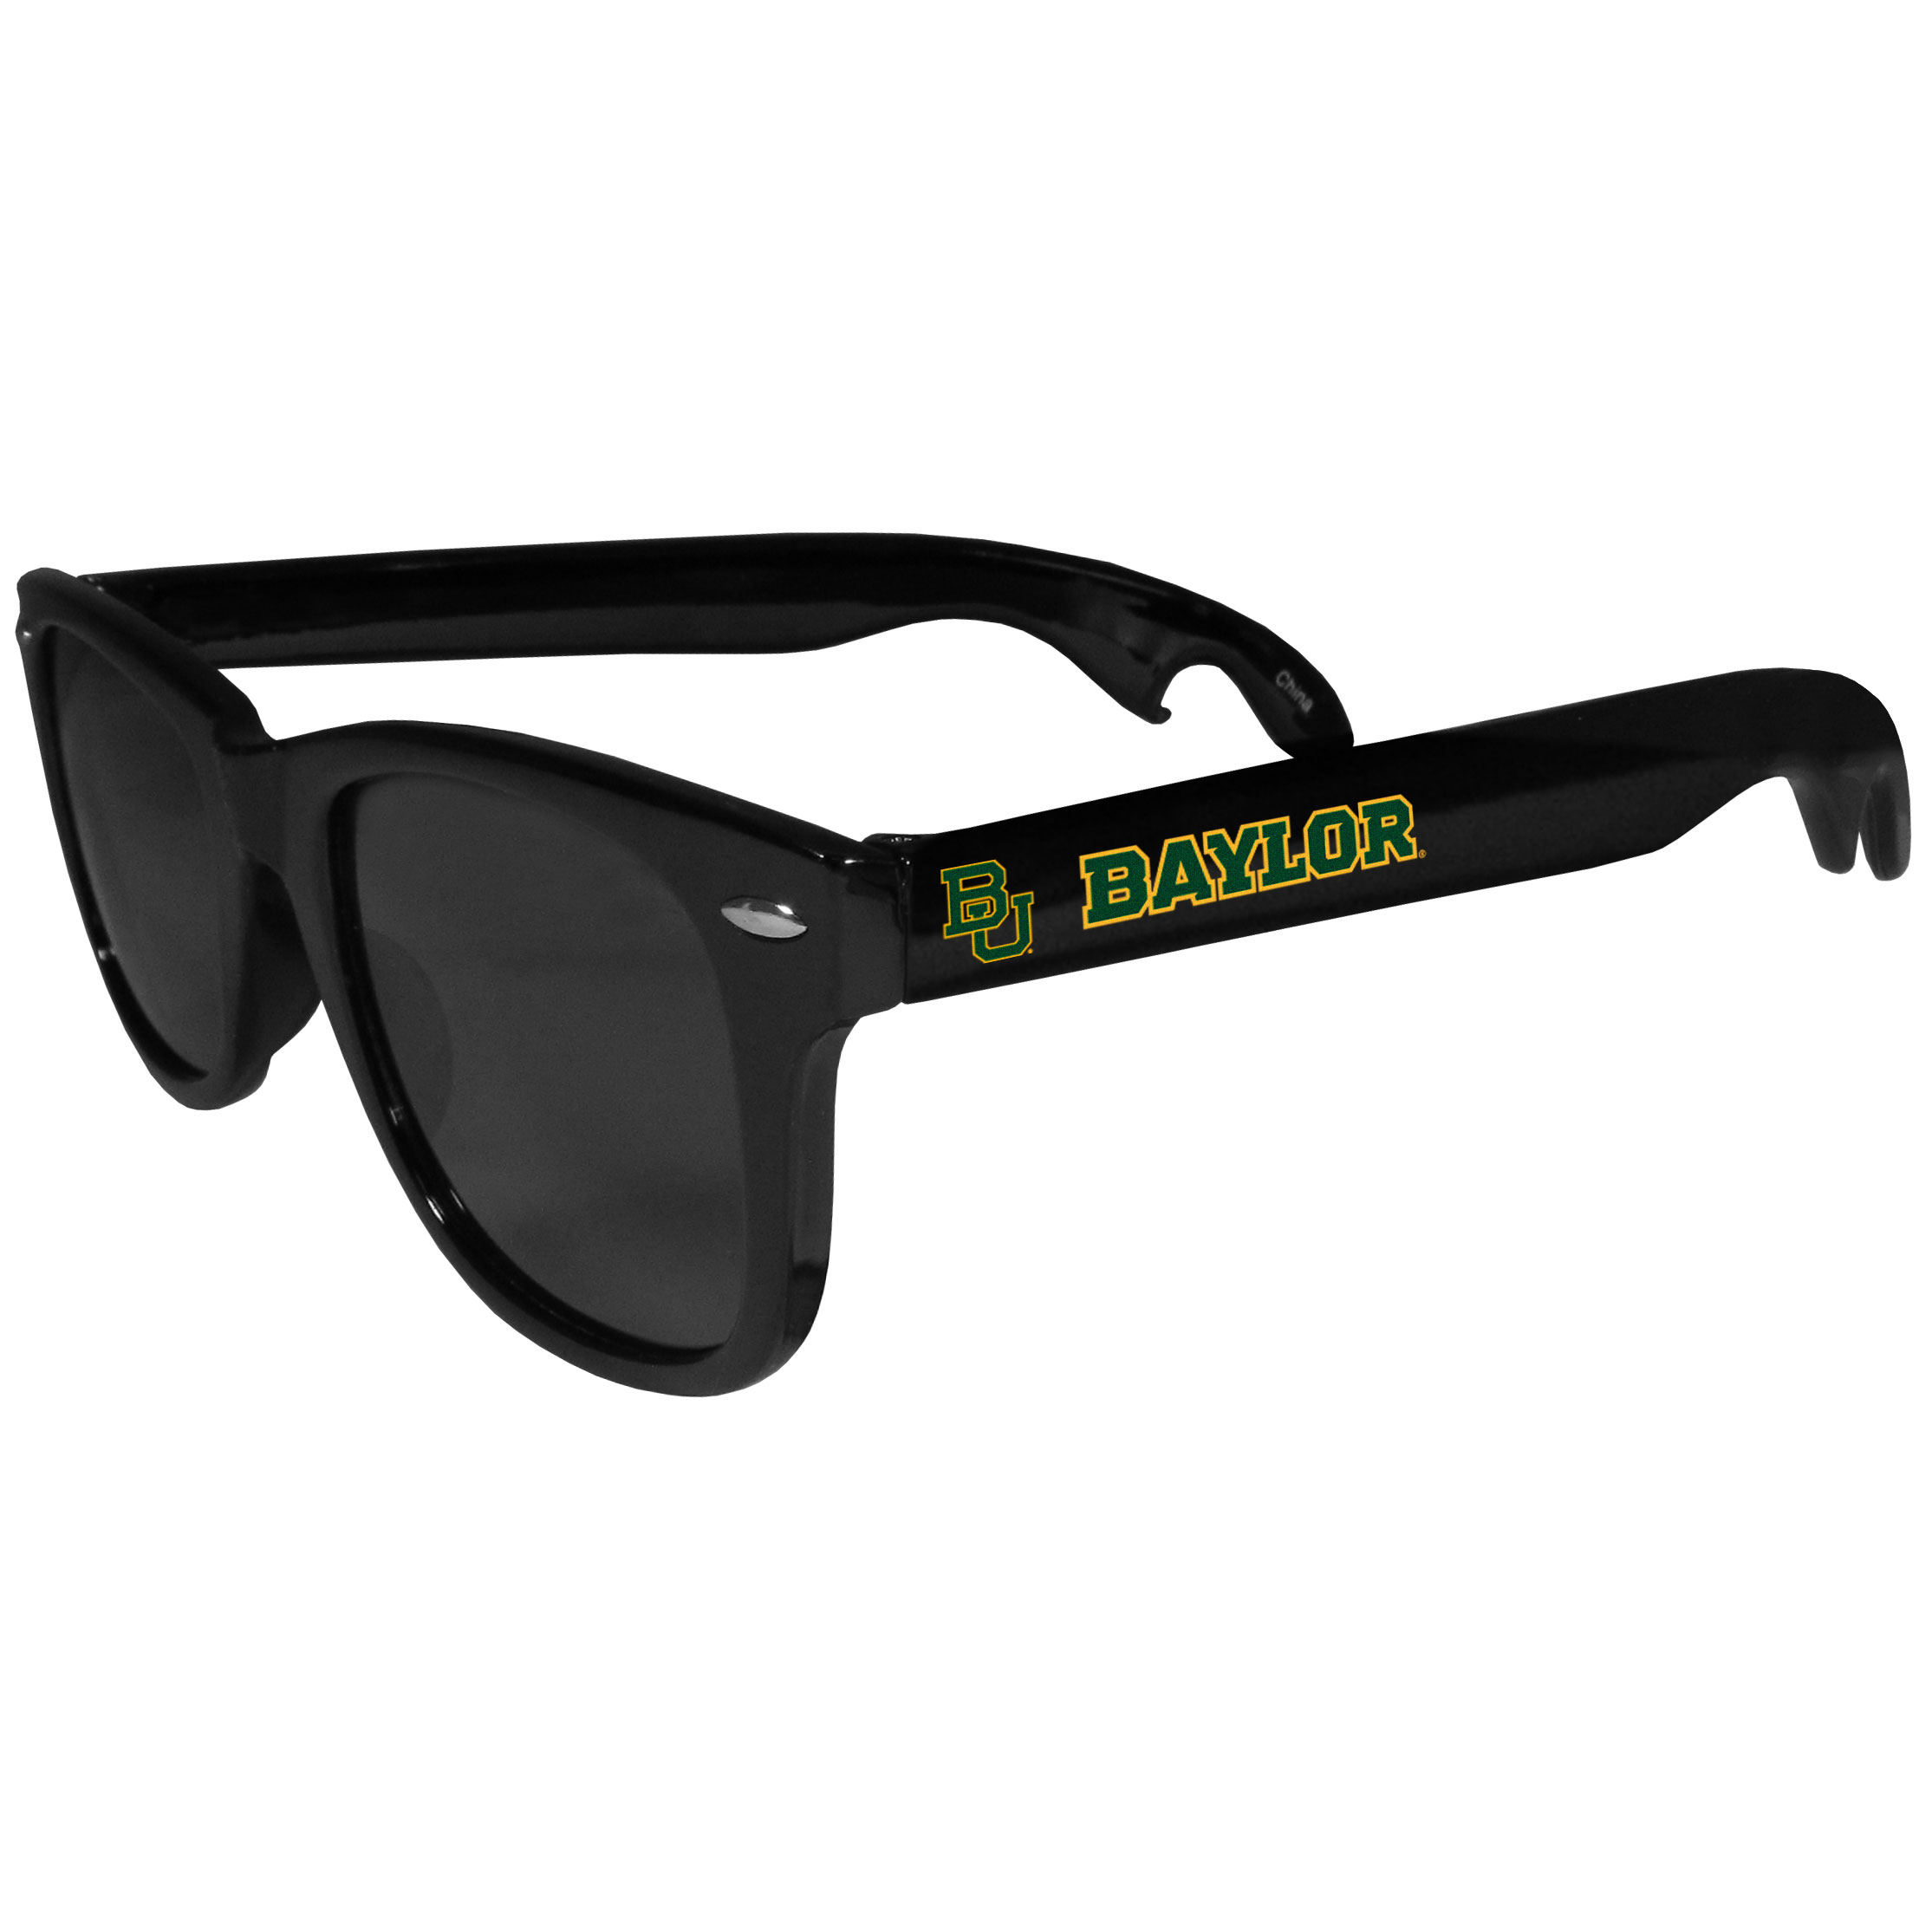 Baylor Bears Beachfarer Bottle Opener Sunglasses - Seriously, these sunglasses open bottles! Keep the party going with these amazing Baylor Bears bottle opener sunglasses. The stylish retro frames feature team designs on the arms and functional bottle openers on the end of the arms. Whether you are at the beach or having a backyard BBQ on game day, these shades will keep your eyes protected with 100% UVA/UVB protection and keep you hydrated with the handy bottle opener arms.